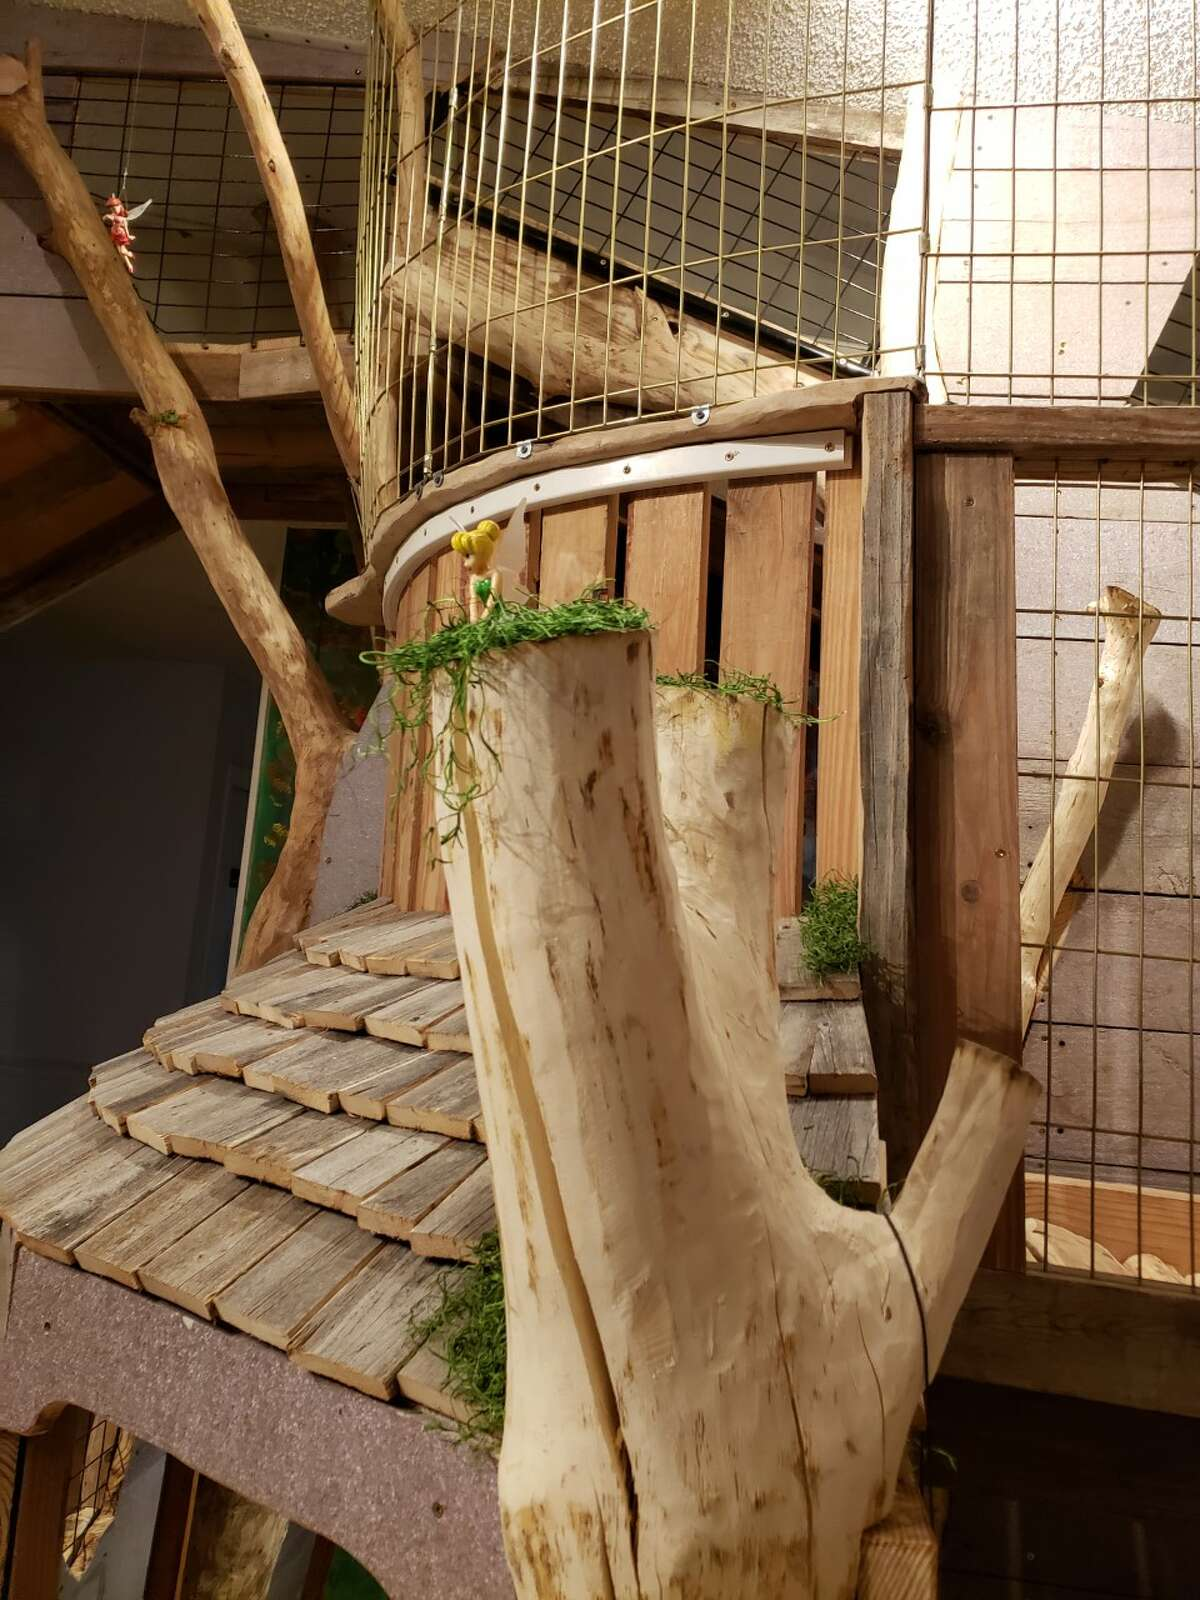 Made entirely from recycled materials, the treehouse has practically everything a kid could want: four bedrooms, slides, bookshelves, ball slide, rope bridges and even secret cubbies and fairy doors for his grandkids to hide things in.